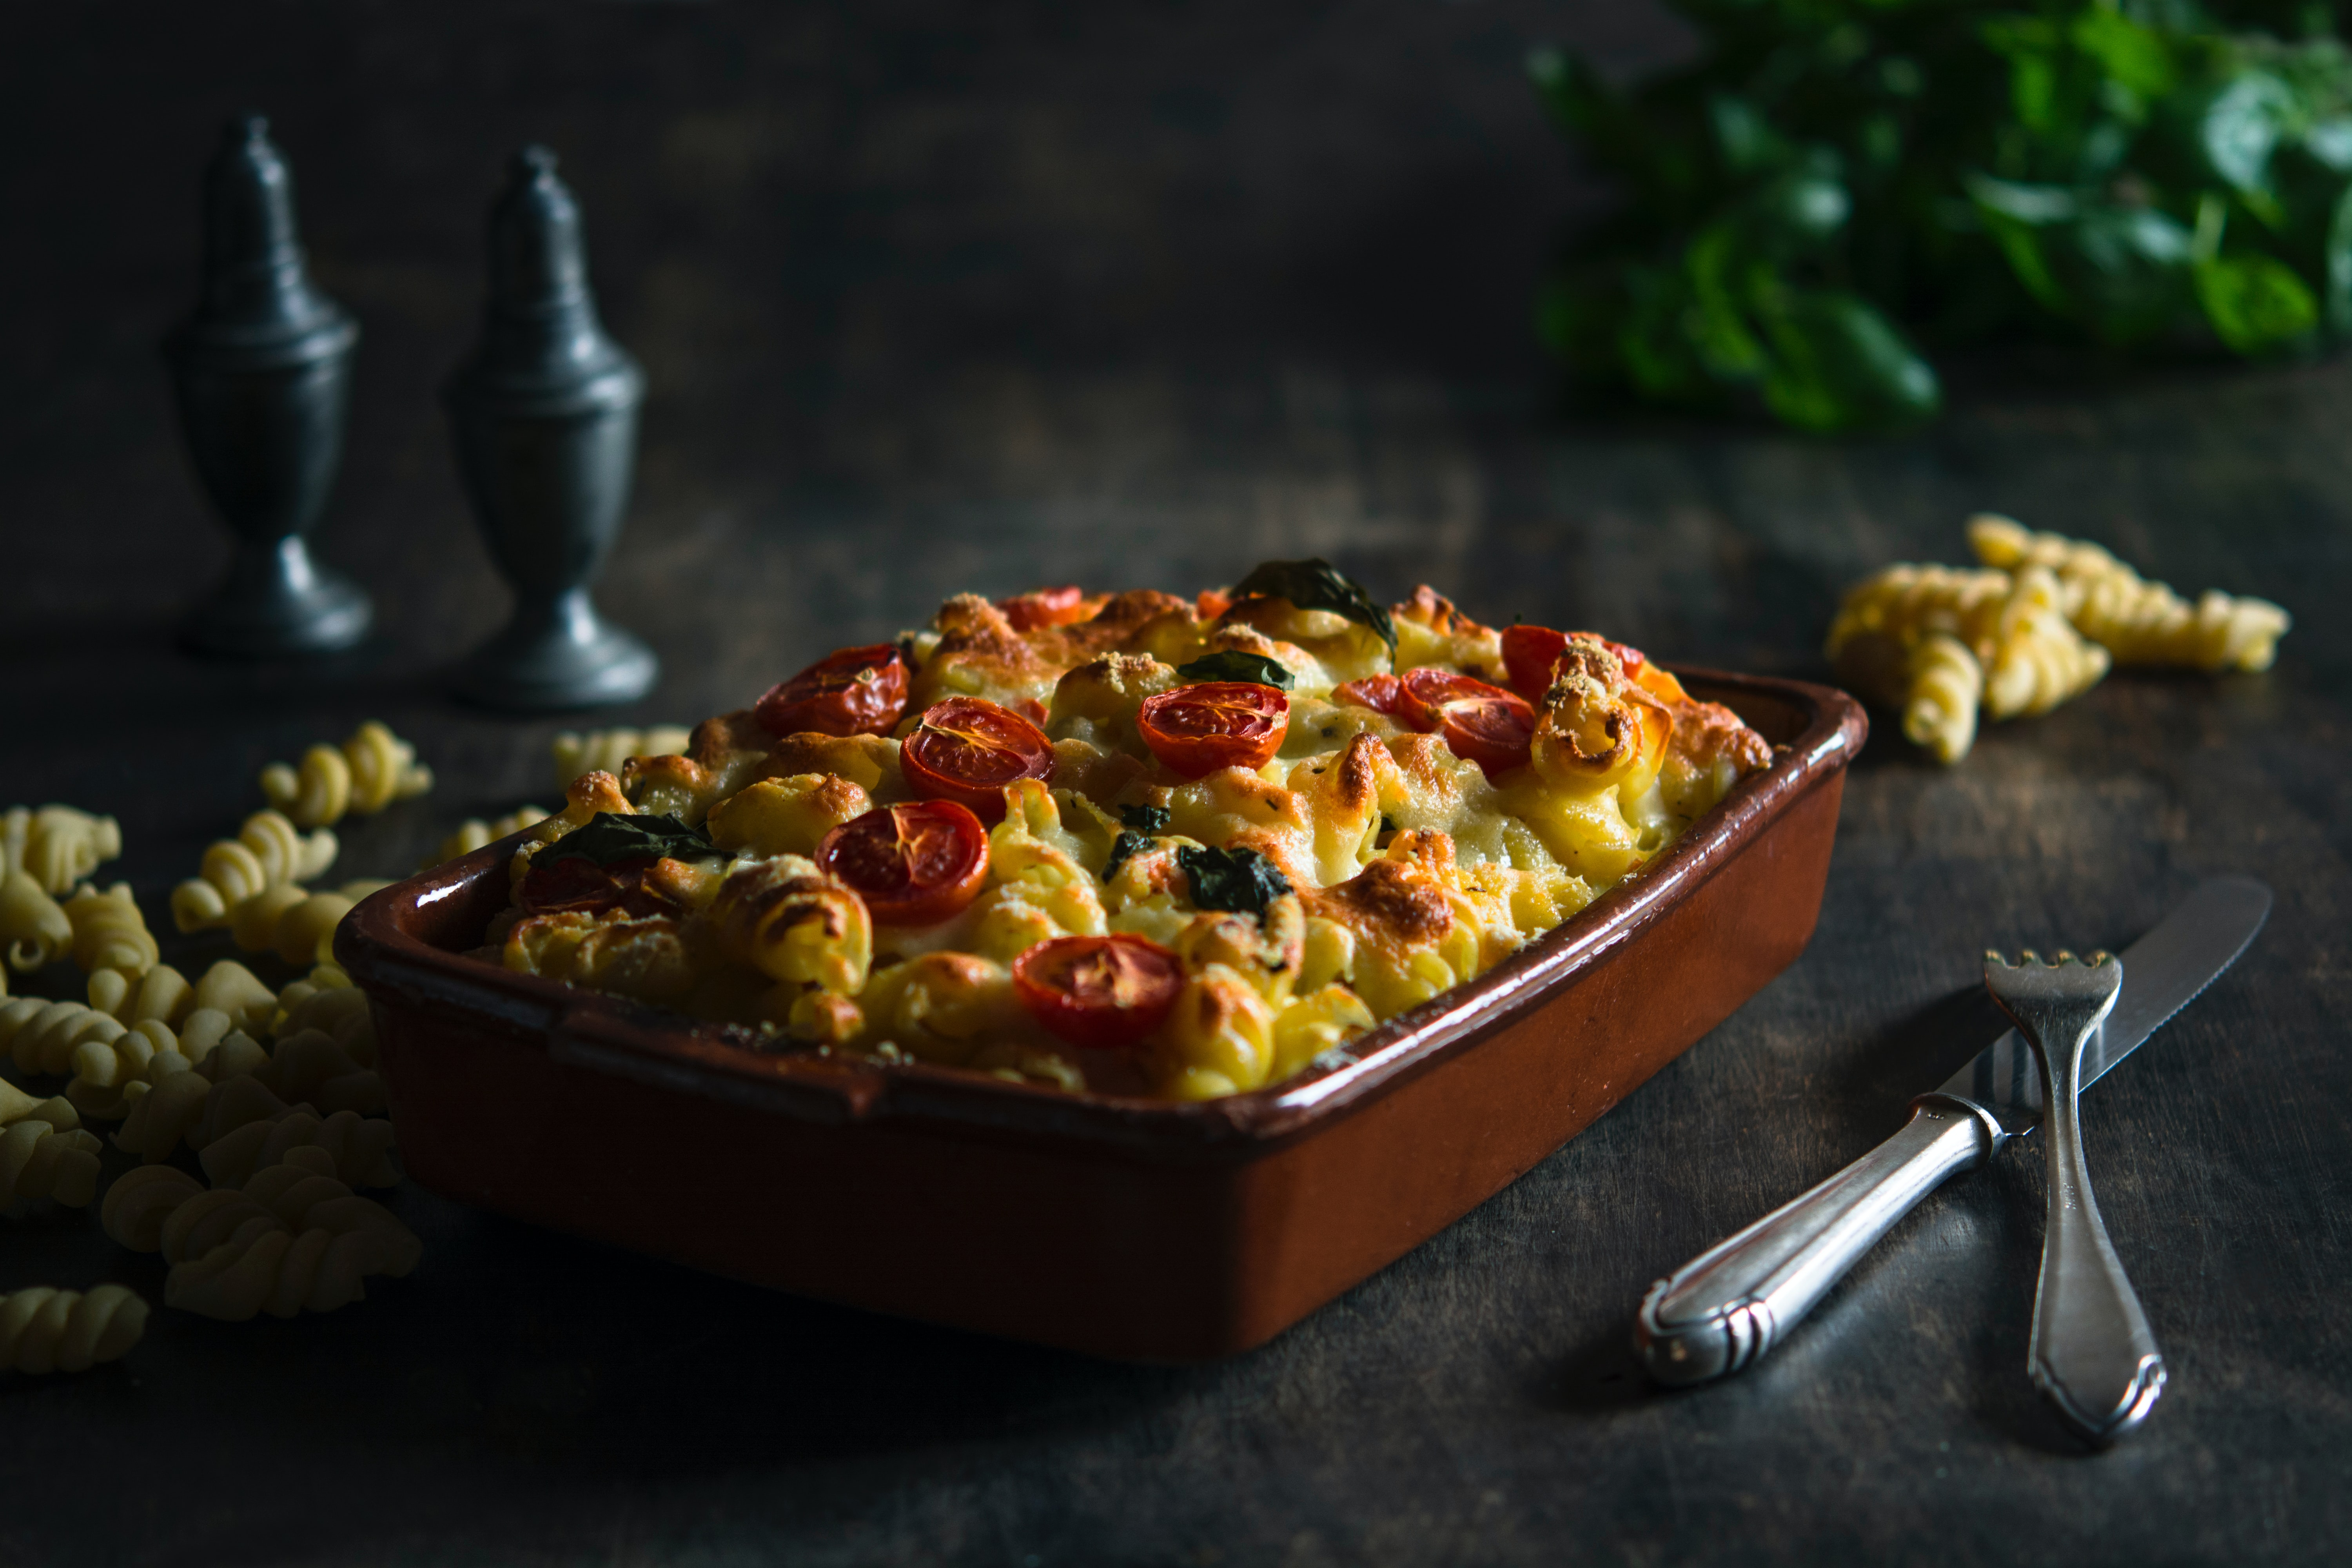 Healthy high protein christmas recipes, yummy baked pasta